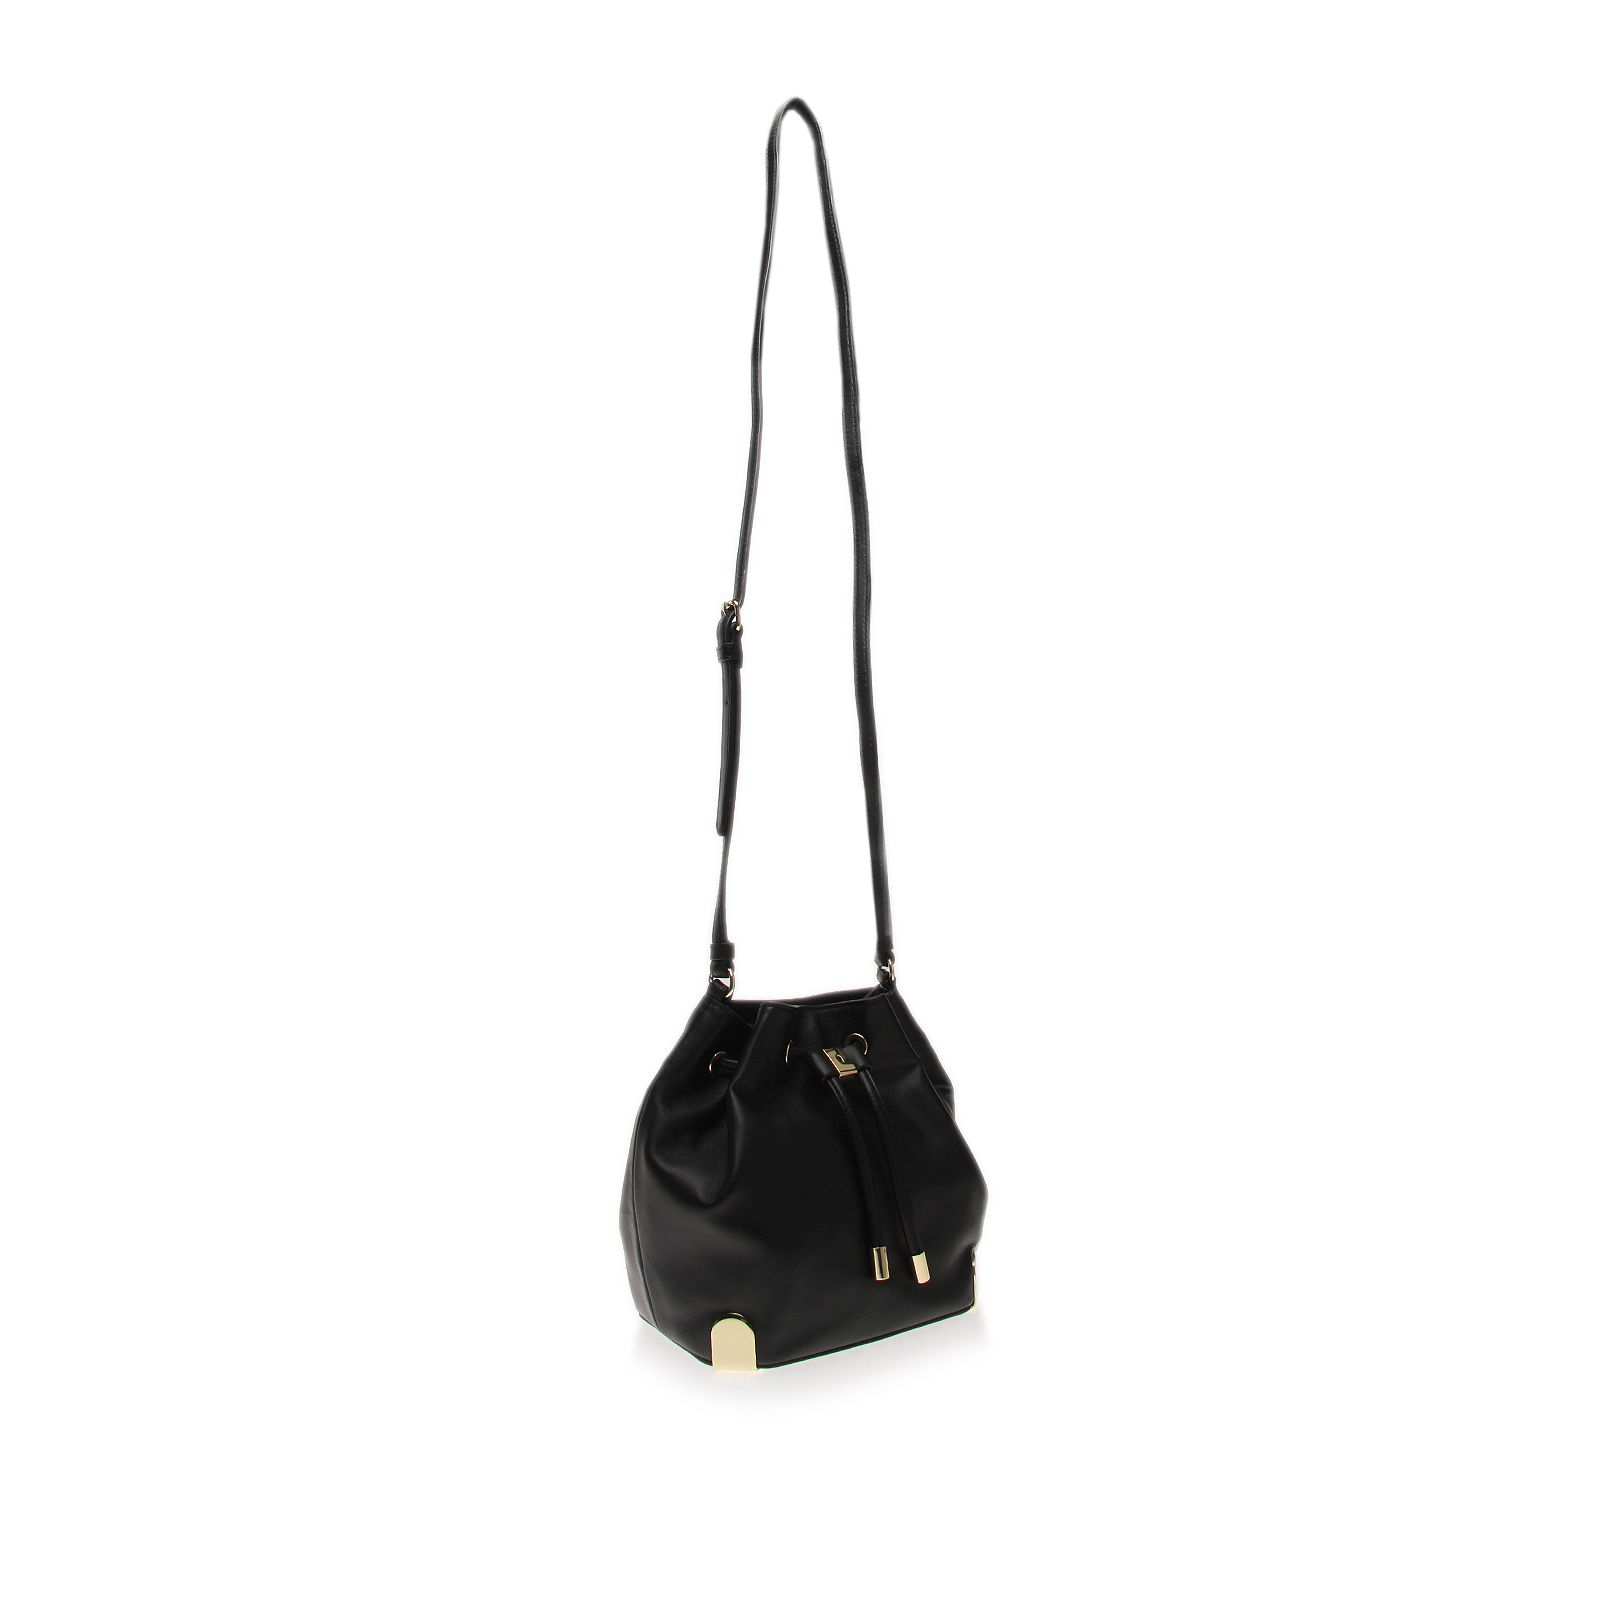 Janet cross-body bag